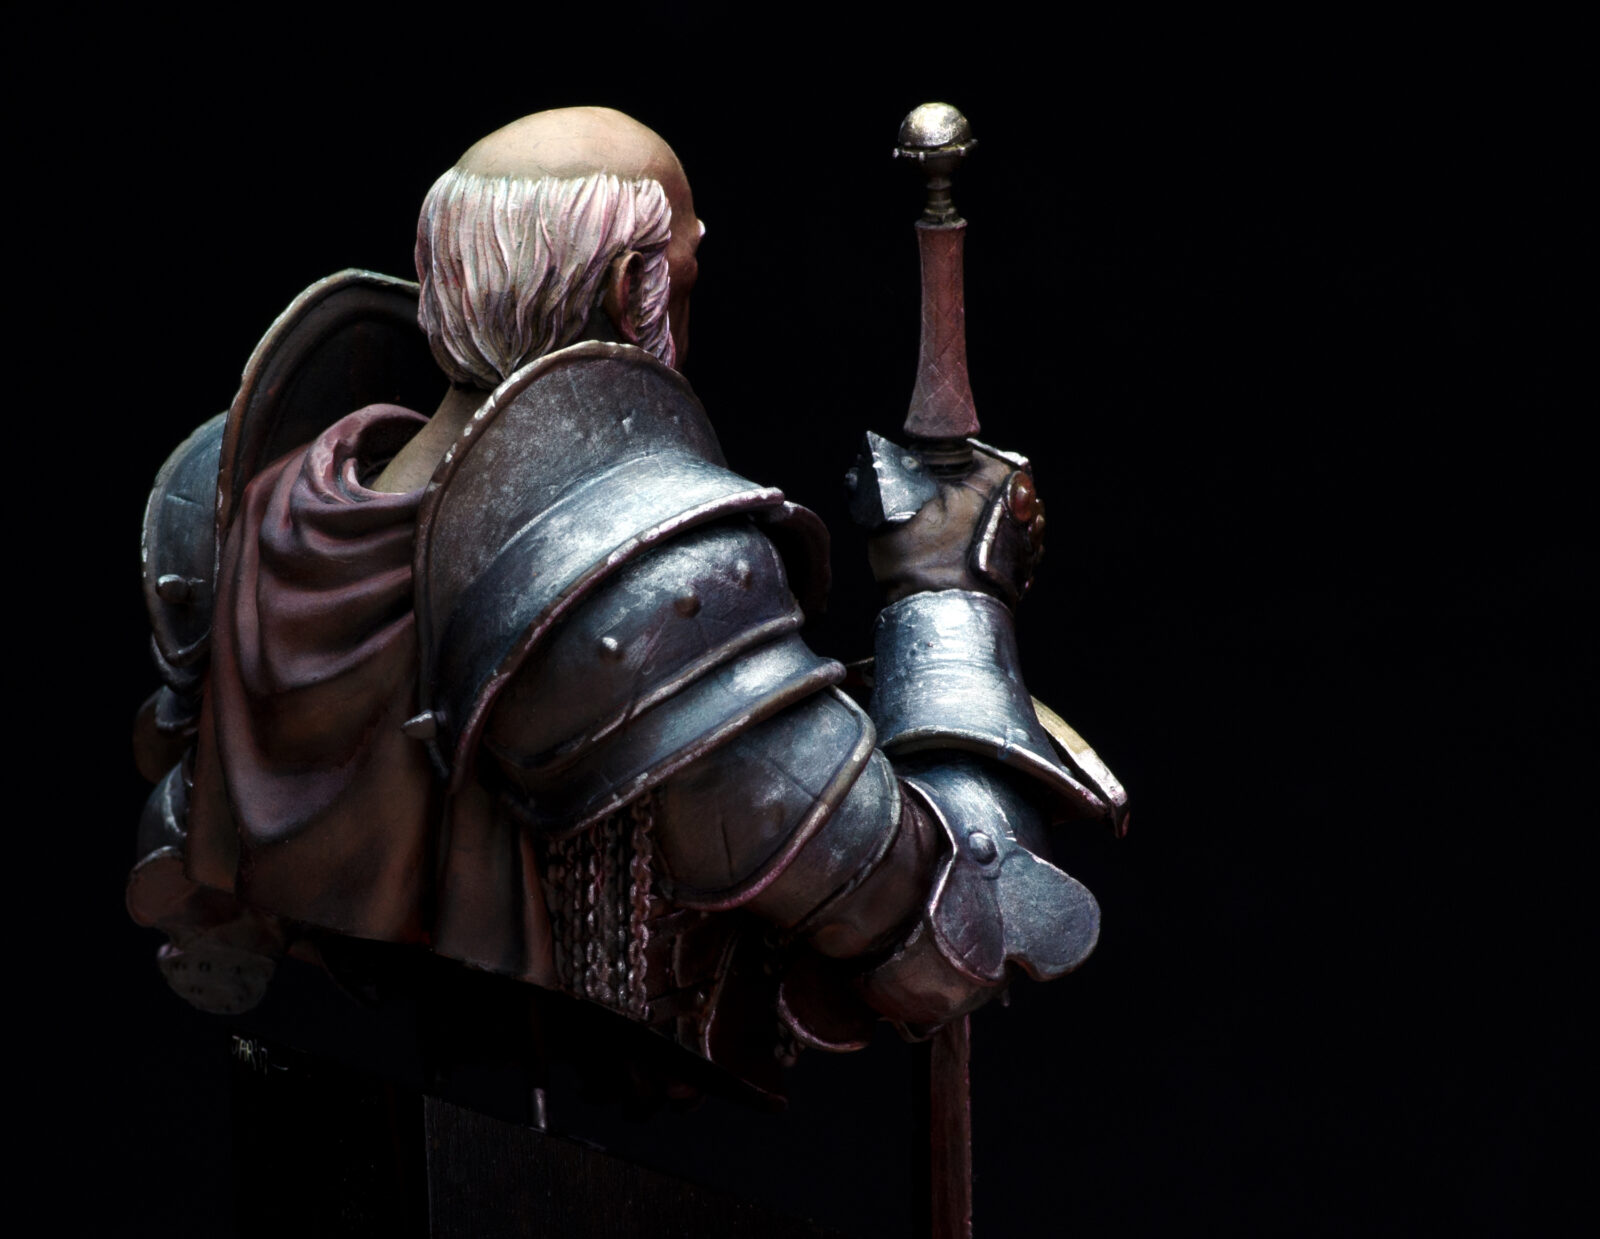 Uther08